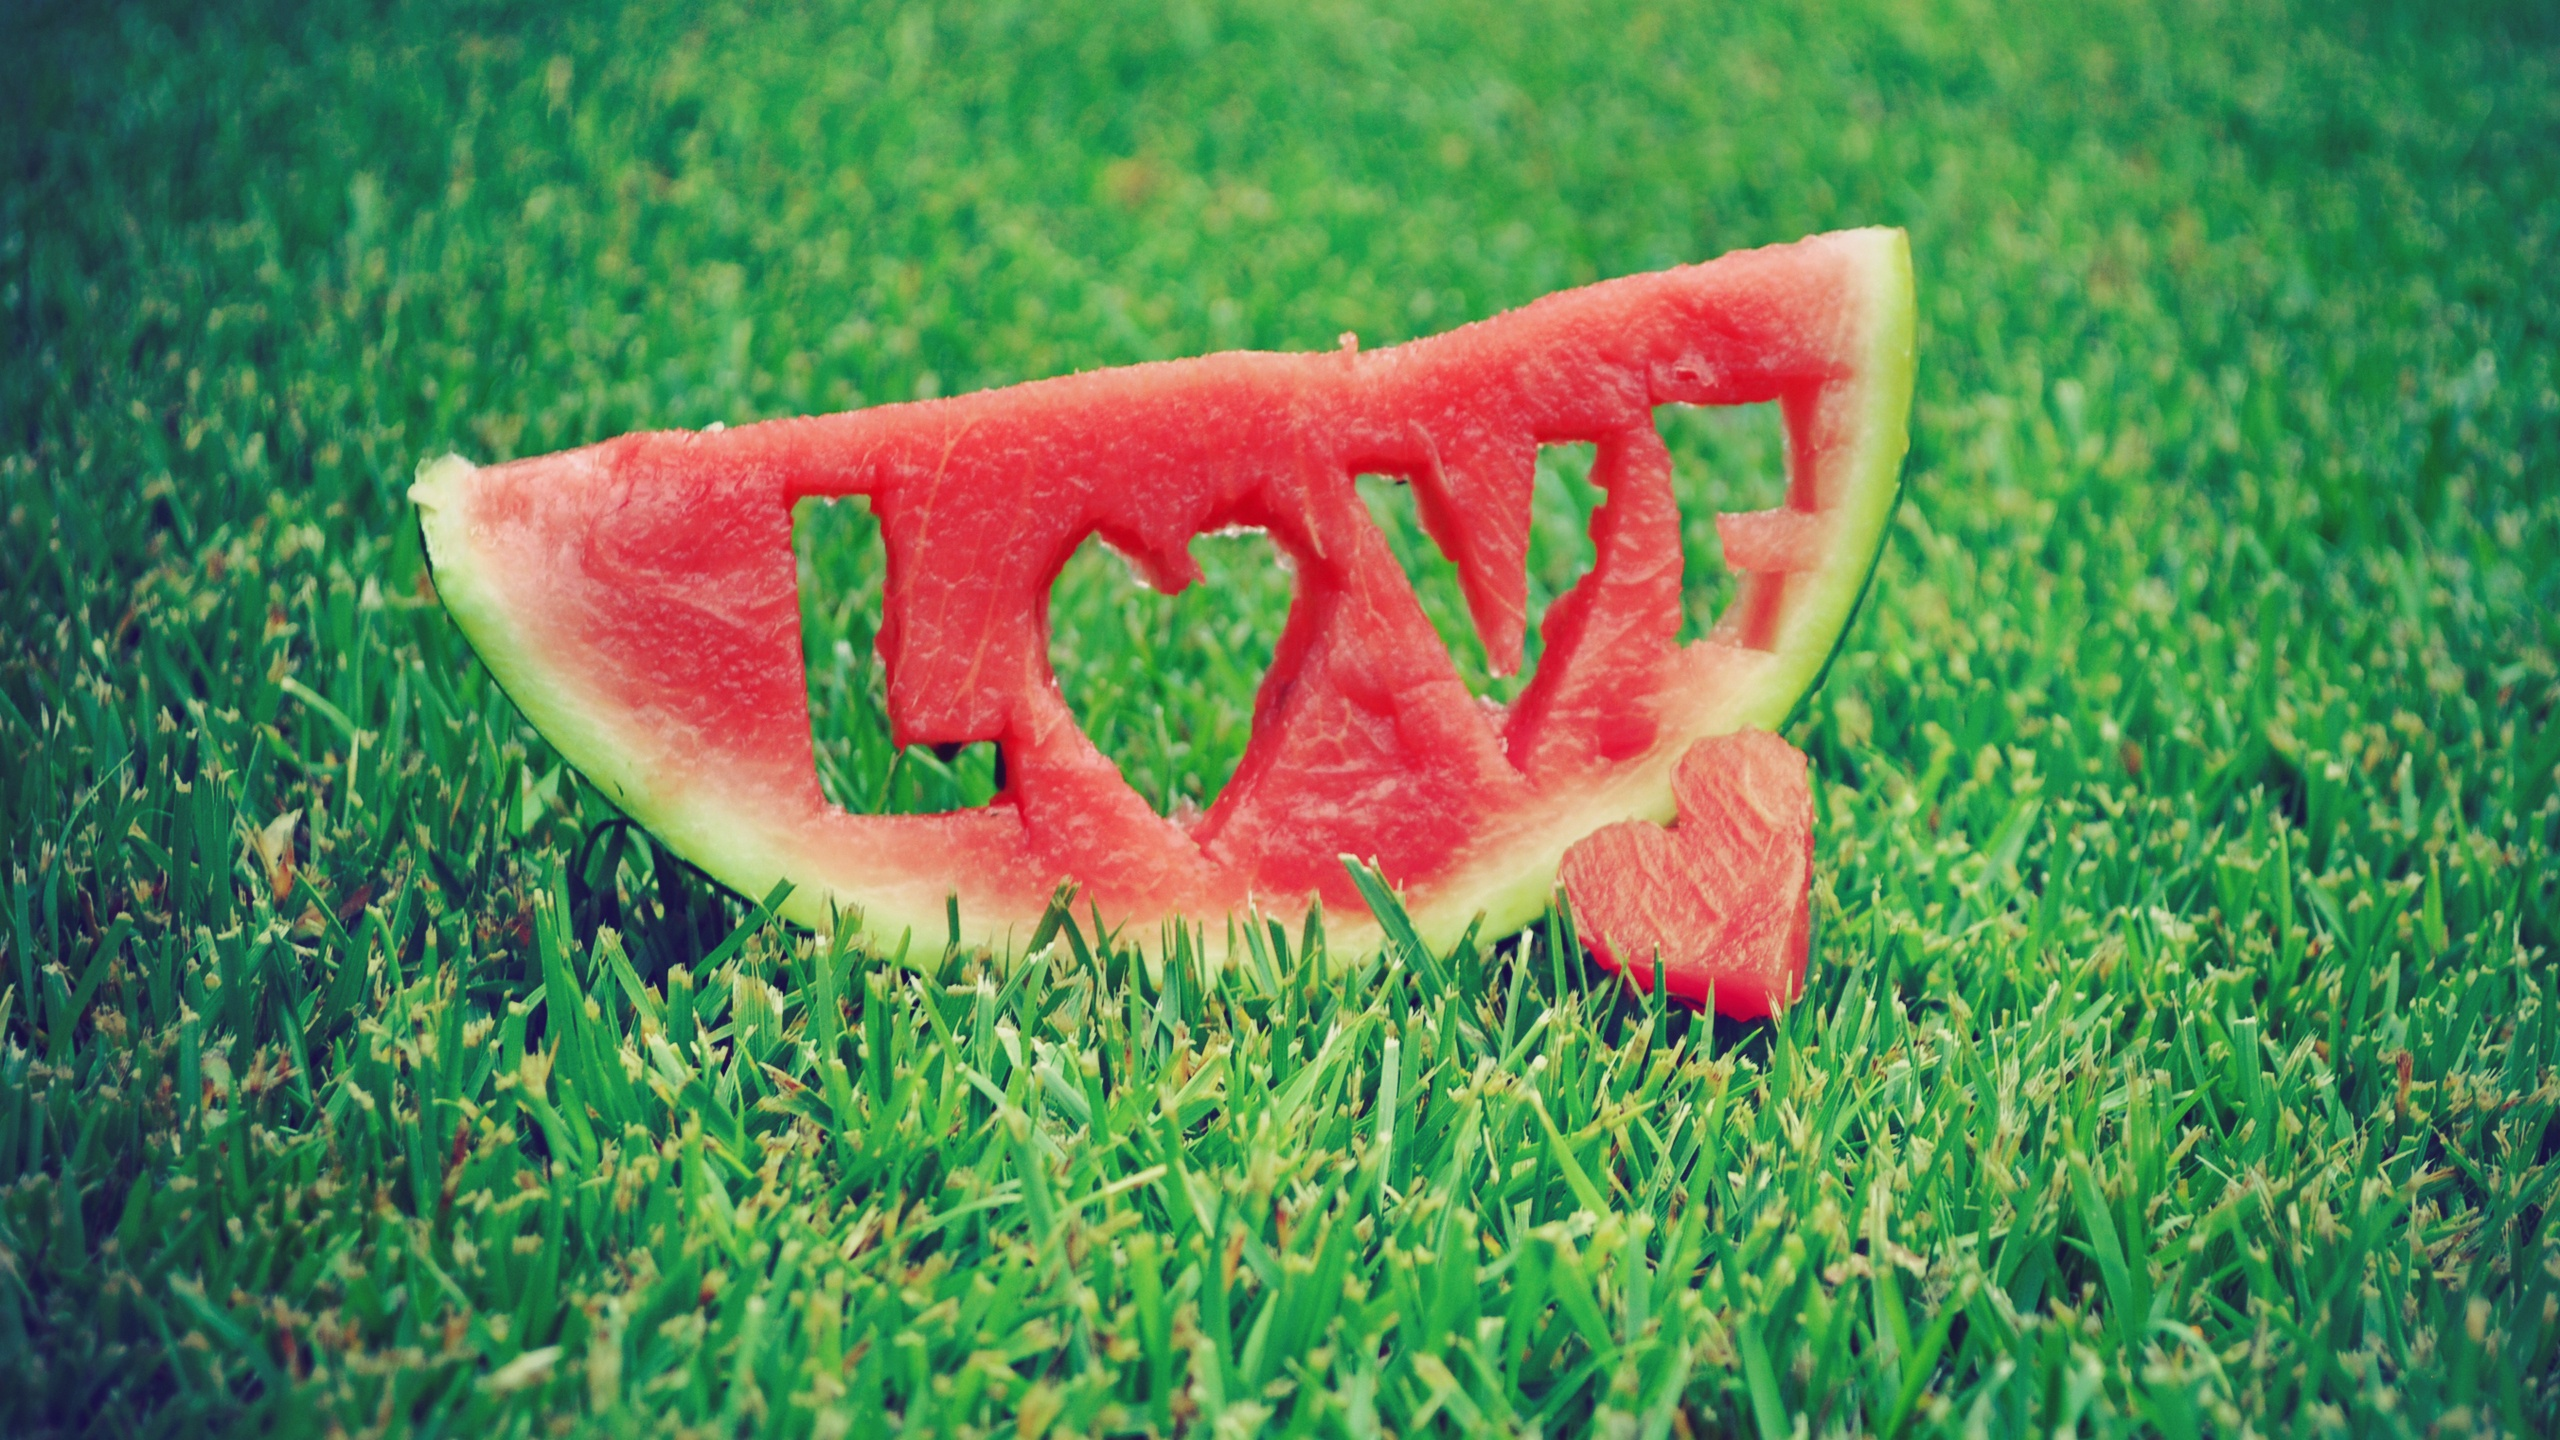 Watermelon Love Grass wallpaper - 2560x1440